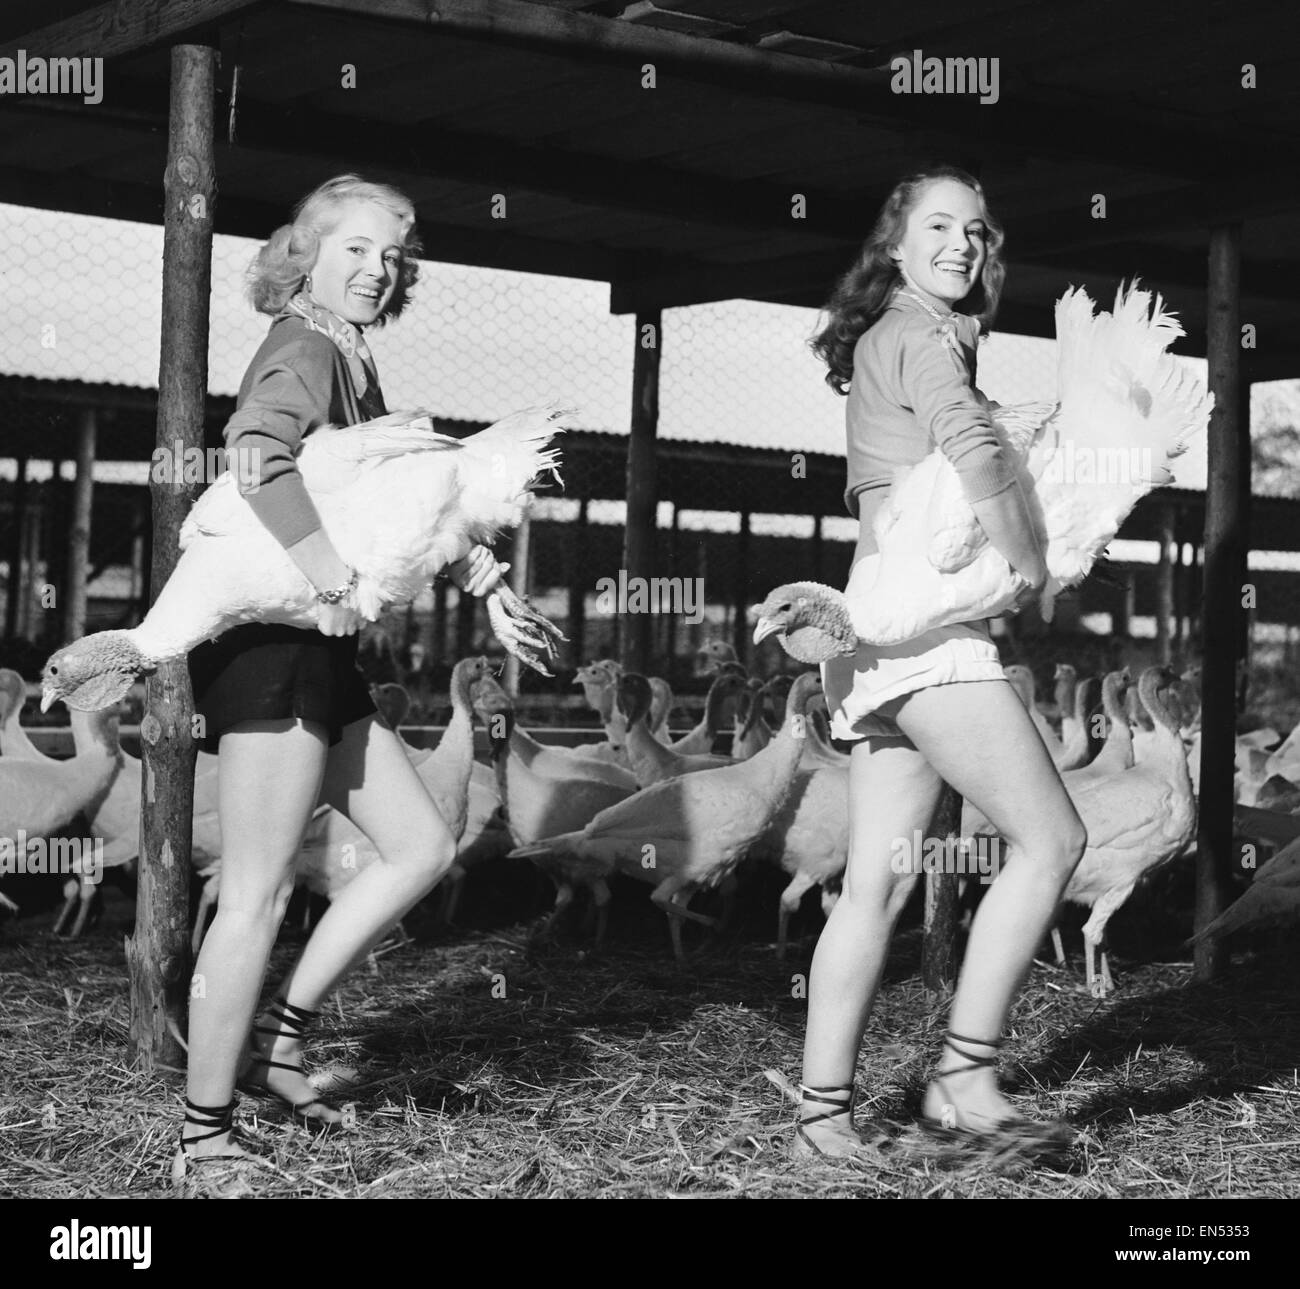 Monica Hasell (right) and friend seen here selecting Christmas turkeys at Happins Farm, Kingshill, Buckinghamshire. - Stock Image